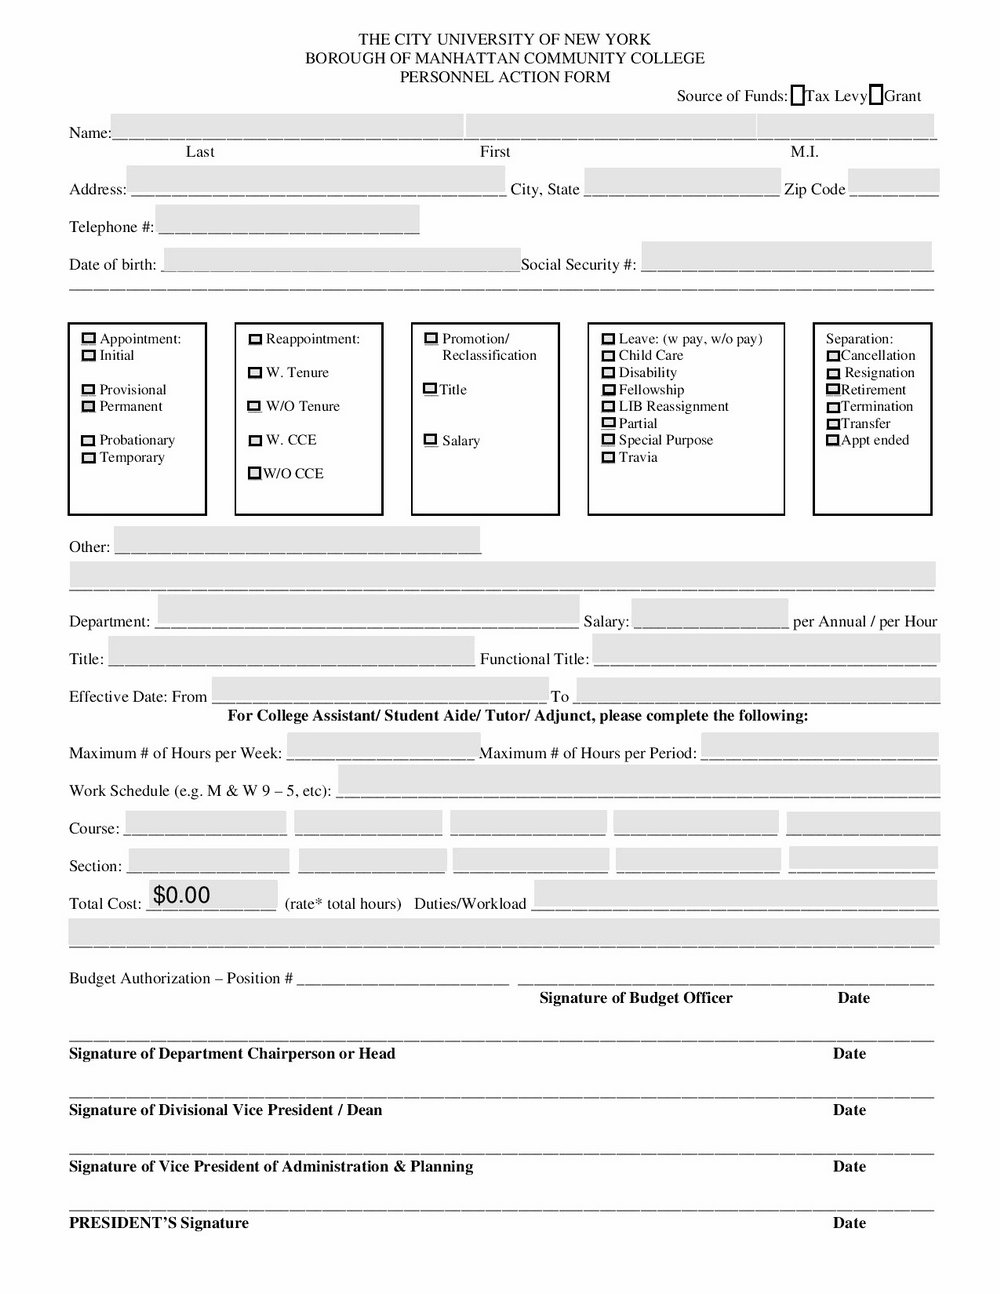 Vanguard Retirement Expense Worksheet